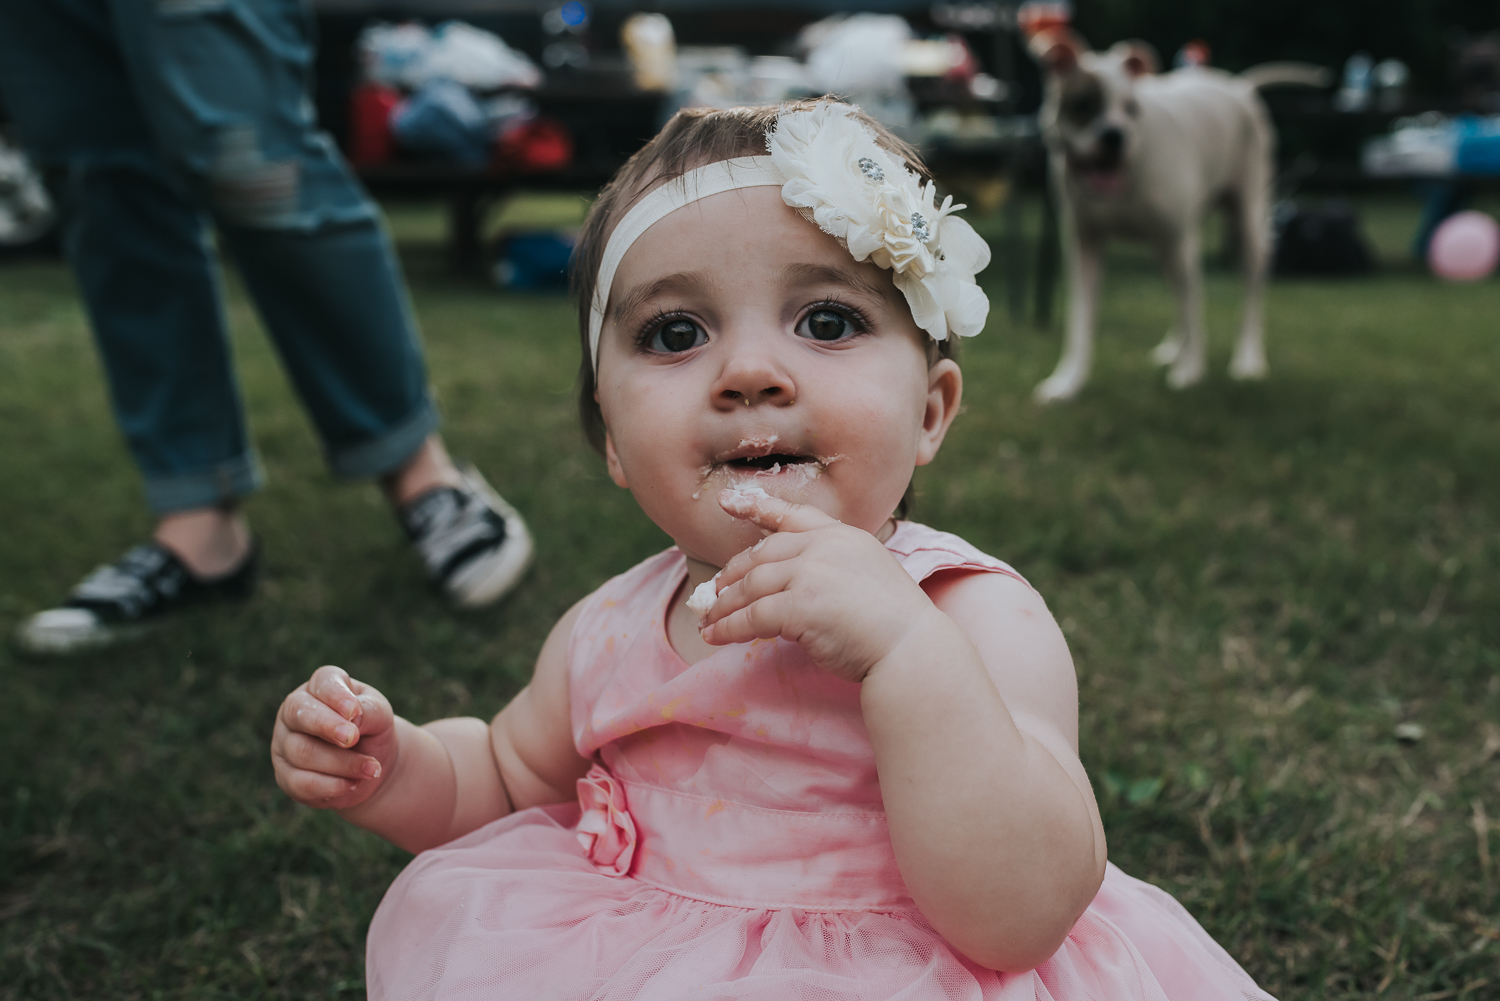 Baby girl in pink dress and white flowers in her hair with fingers and face covered in white icing sitting in the grass